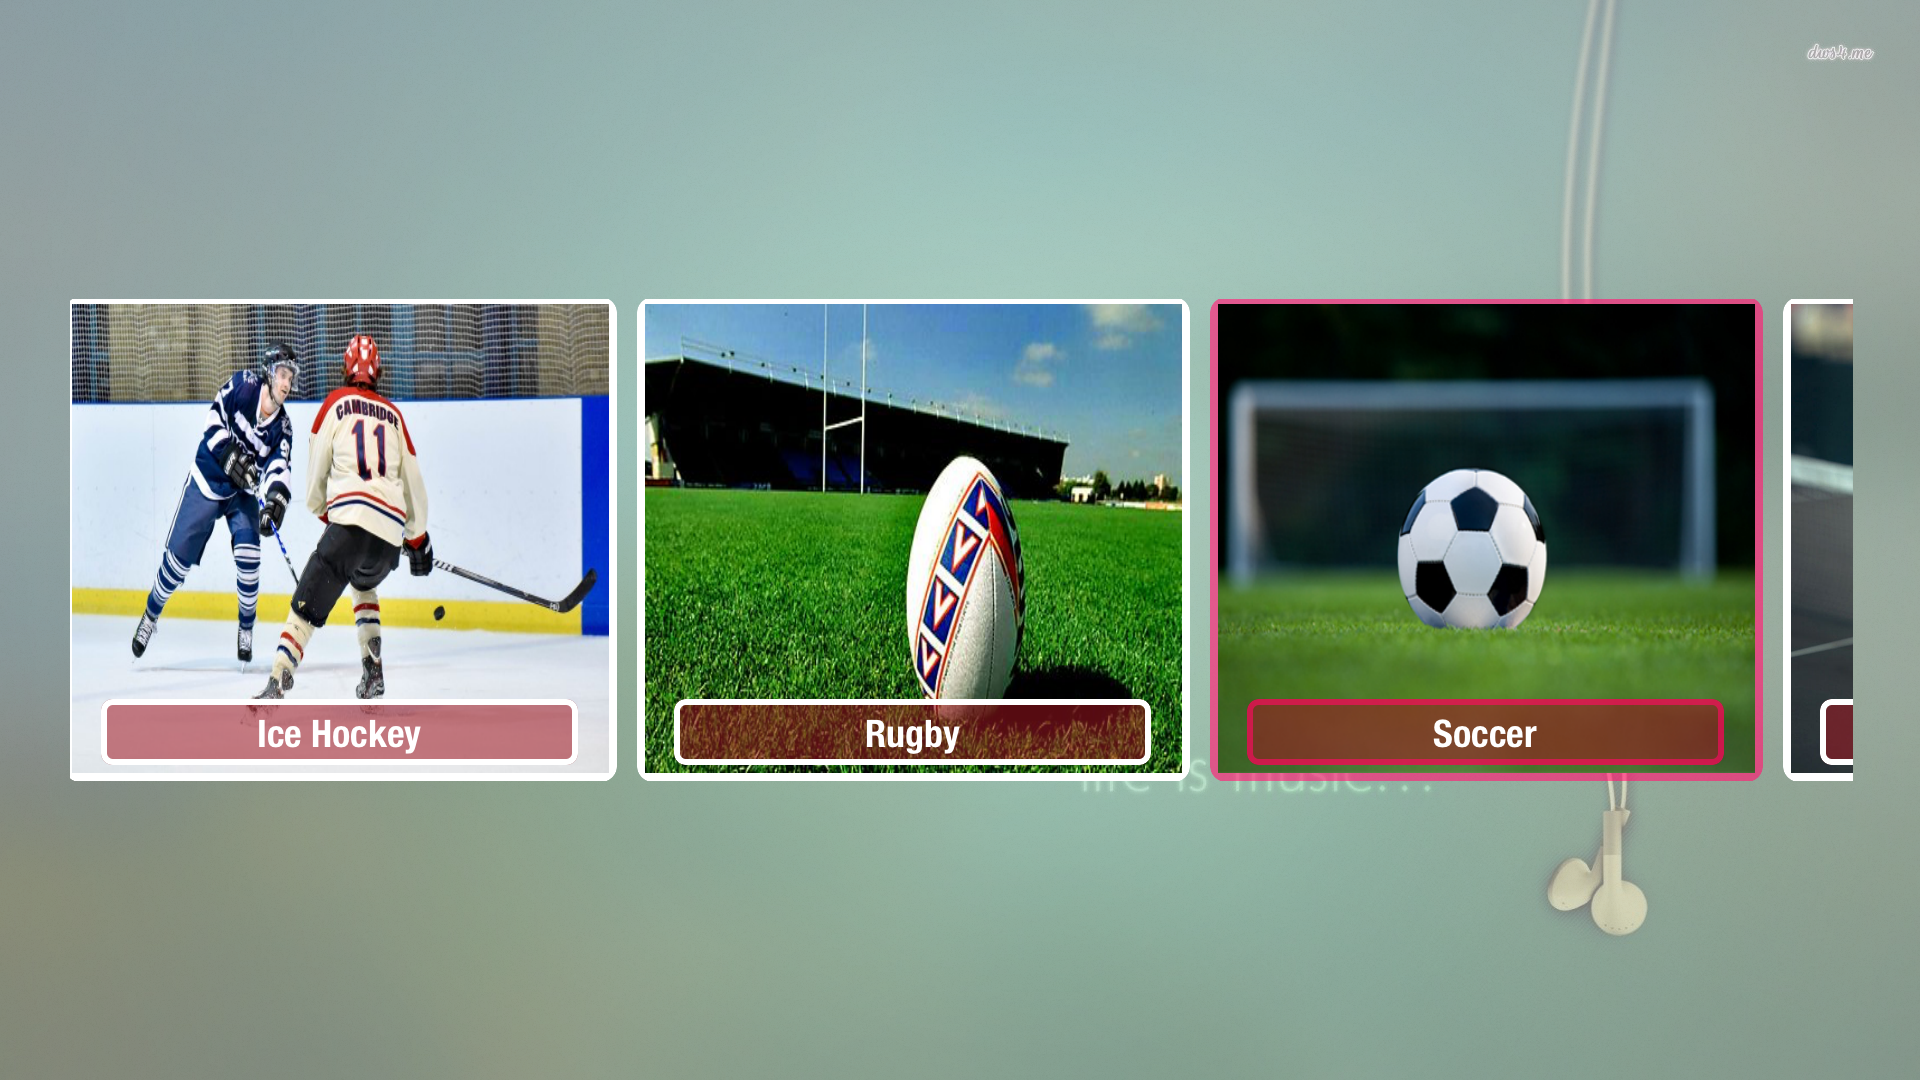 Sports Latest & Highlights - Powered by YouTube screenshot 4